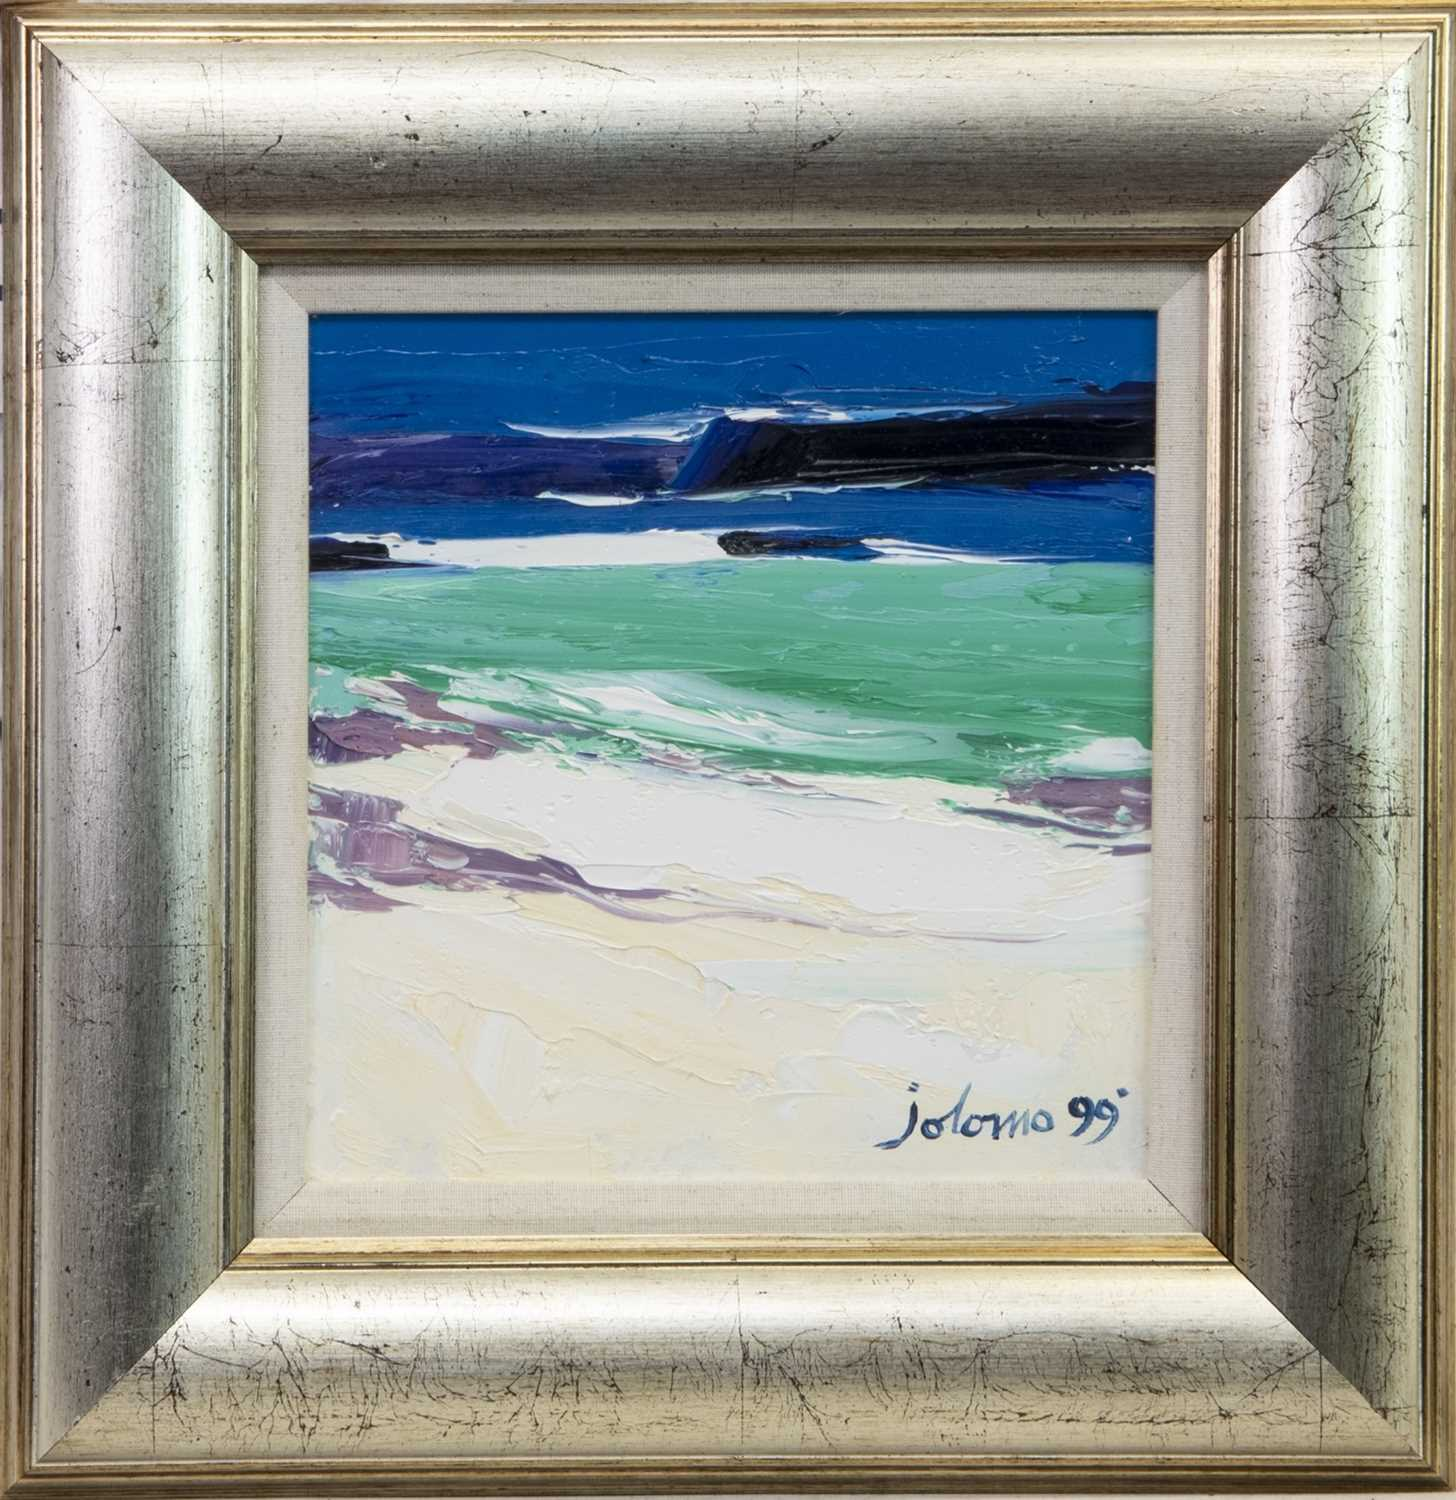 Lot 505 - WHITE STRAND, ISLE OF IONA, AN OIL BY JOLOMO